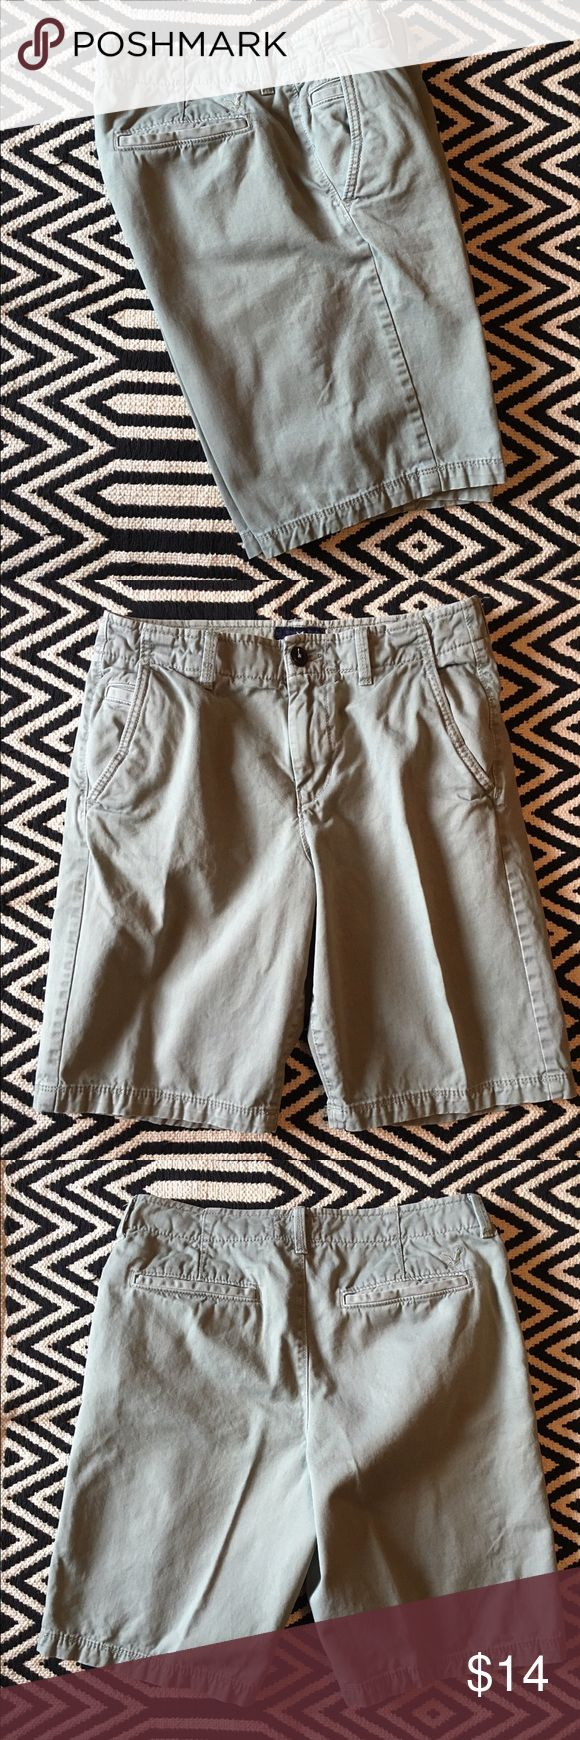 American Eagle Outfitters shorts Great condition. American Eagle Outfitters shorts. Size 29. 100% cotton. American Eagle Outfitters Shorts